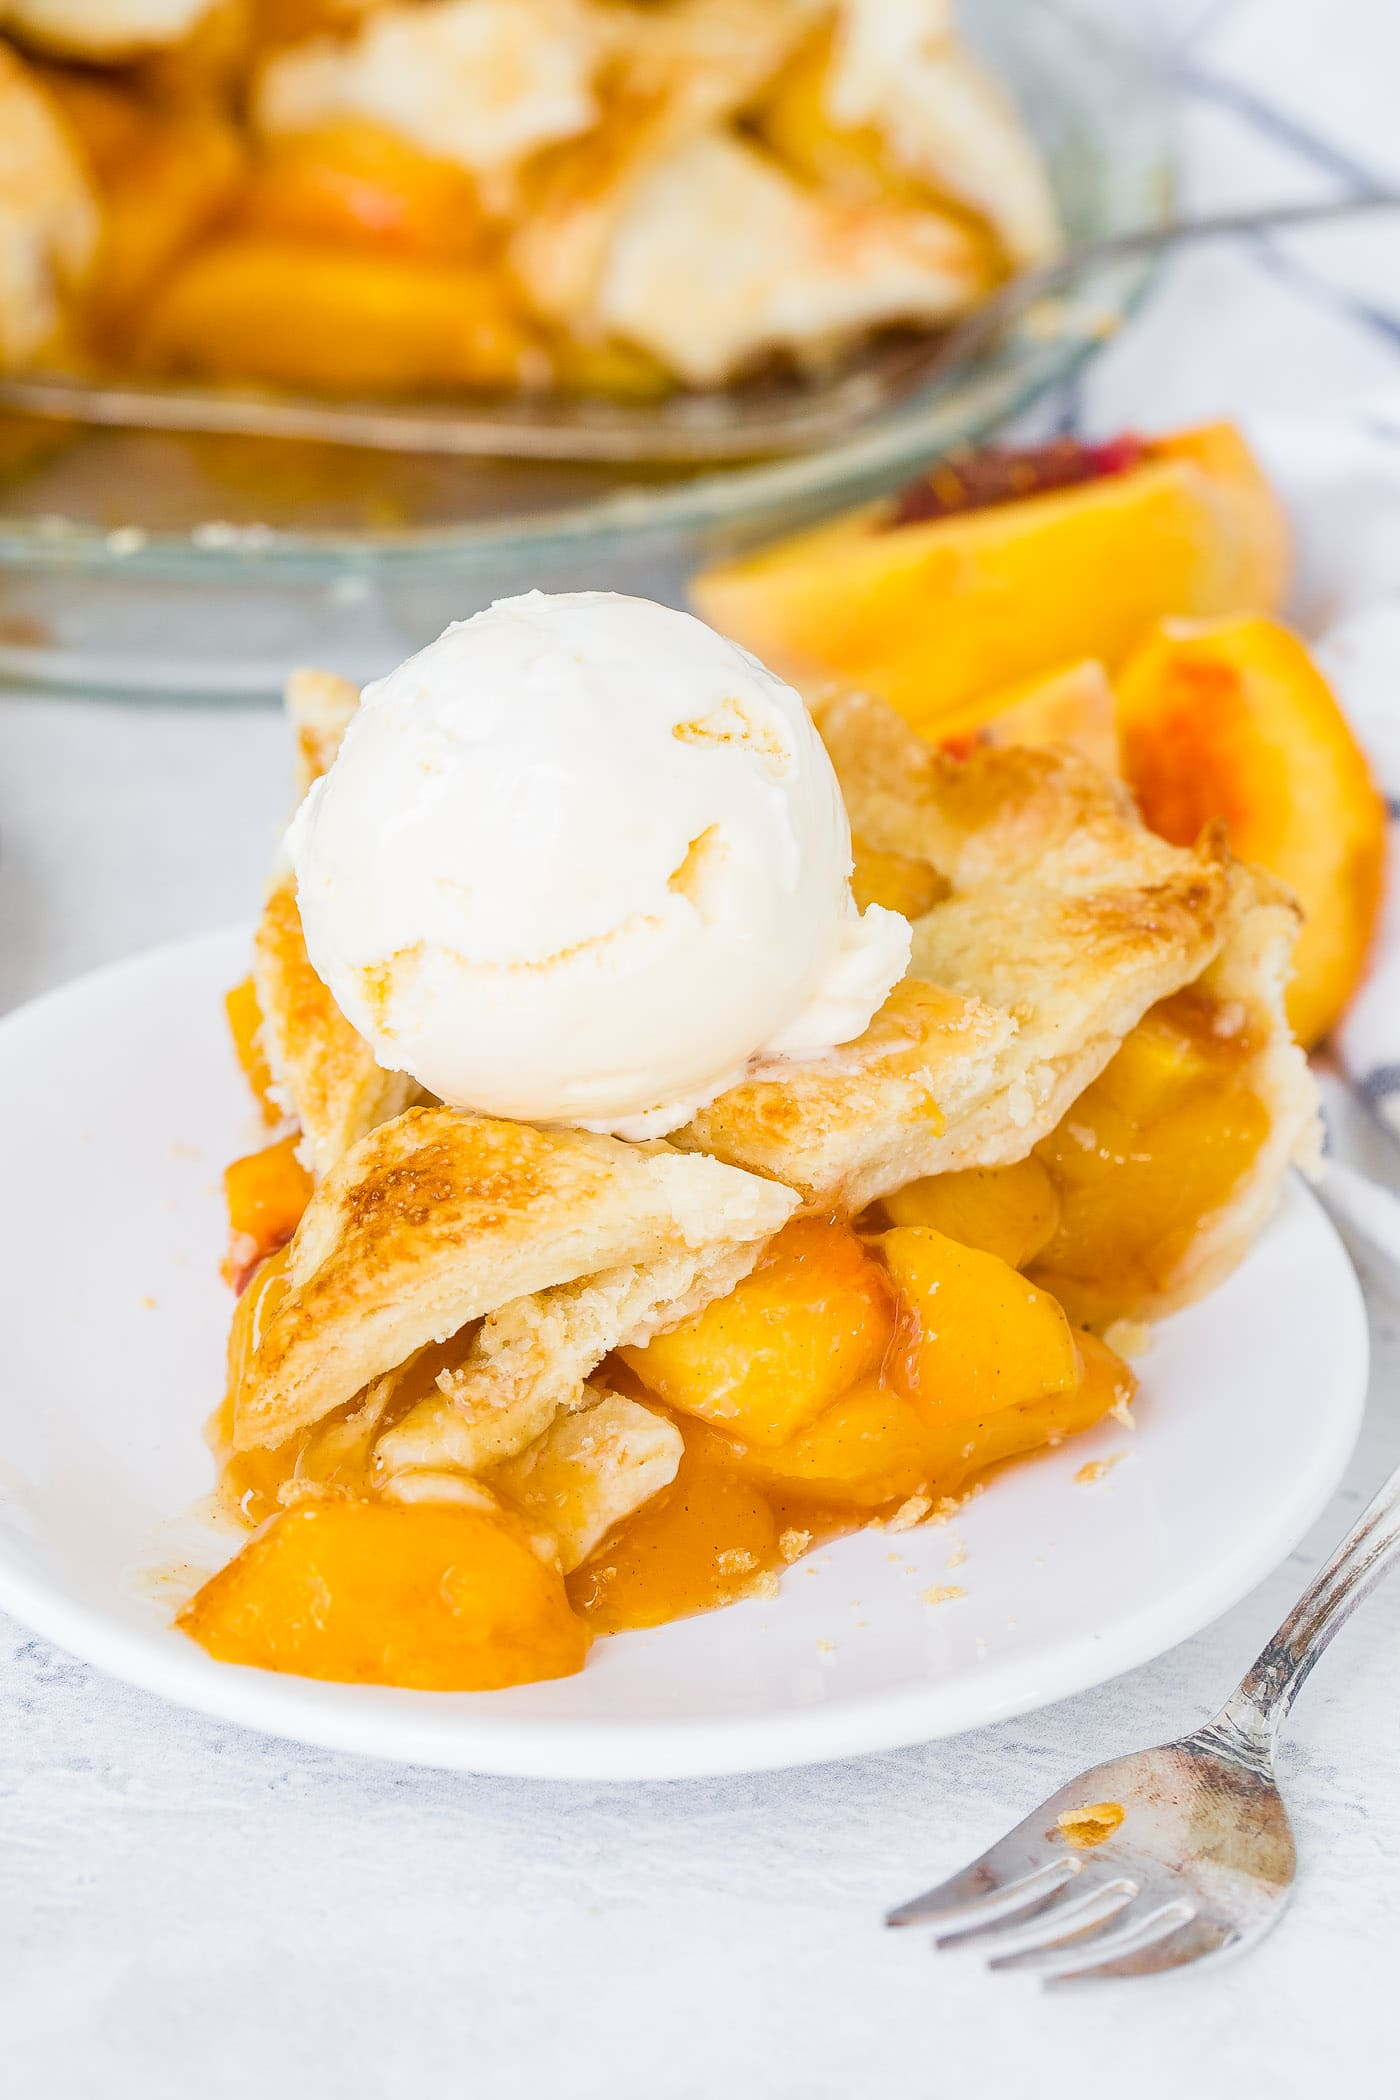 A photo of a slice of fresh peach pie with lattice crust on a white plate with a scoop of vanilla ice cream on top.